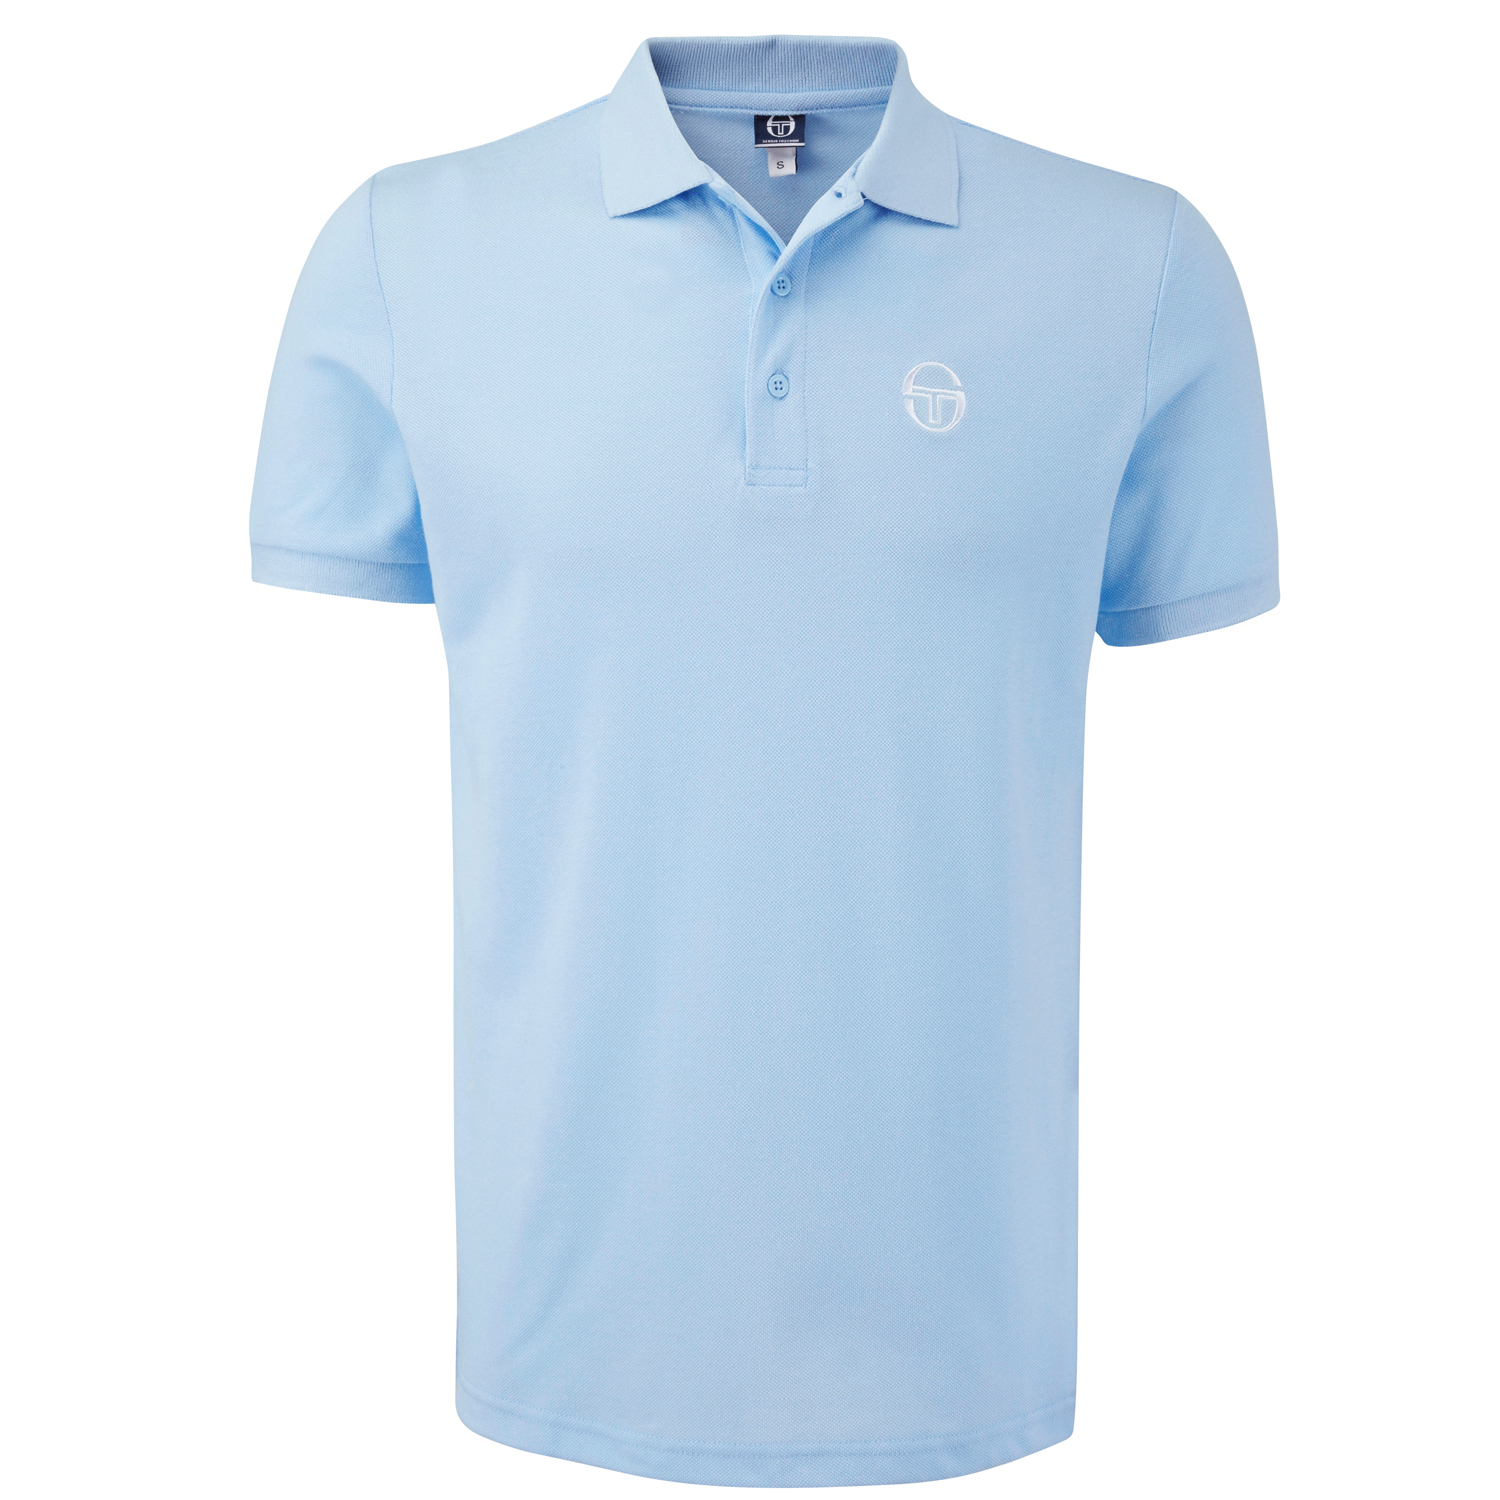 Sergio-Tacchini-Mens-Short-Sleeve-Polo-Shirt-T-Shirt-Top-Heigham-New